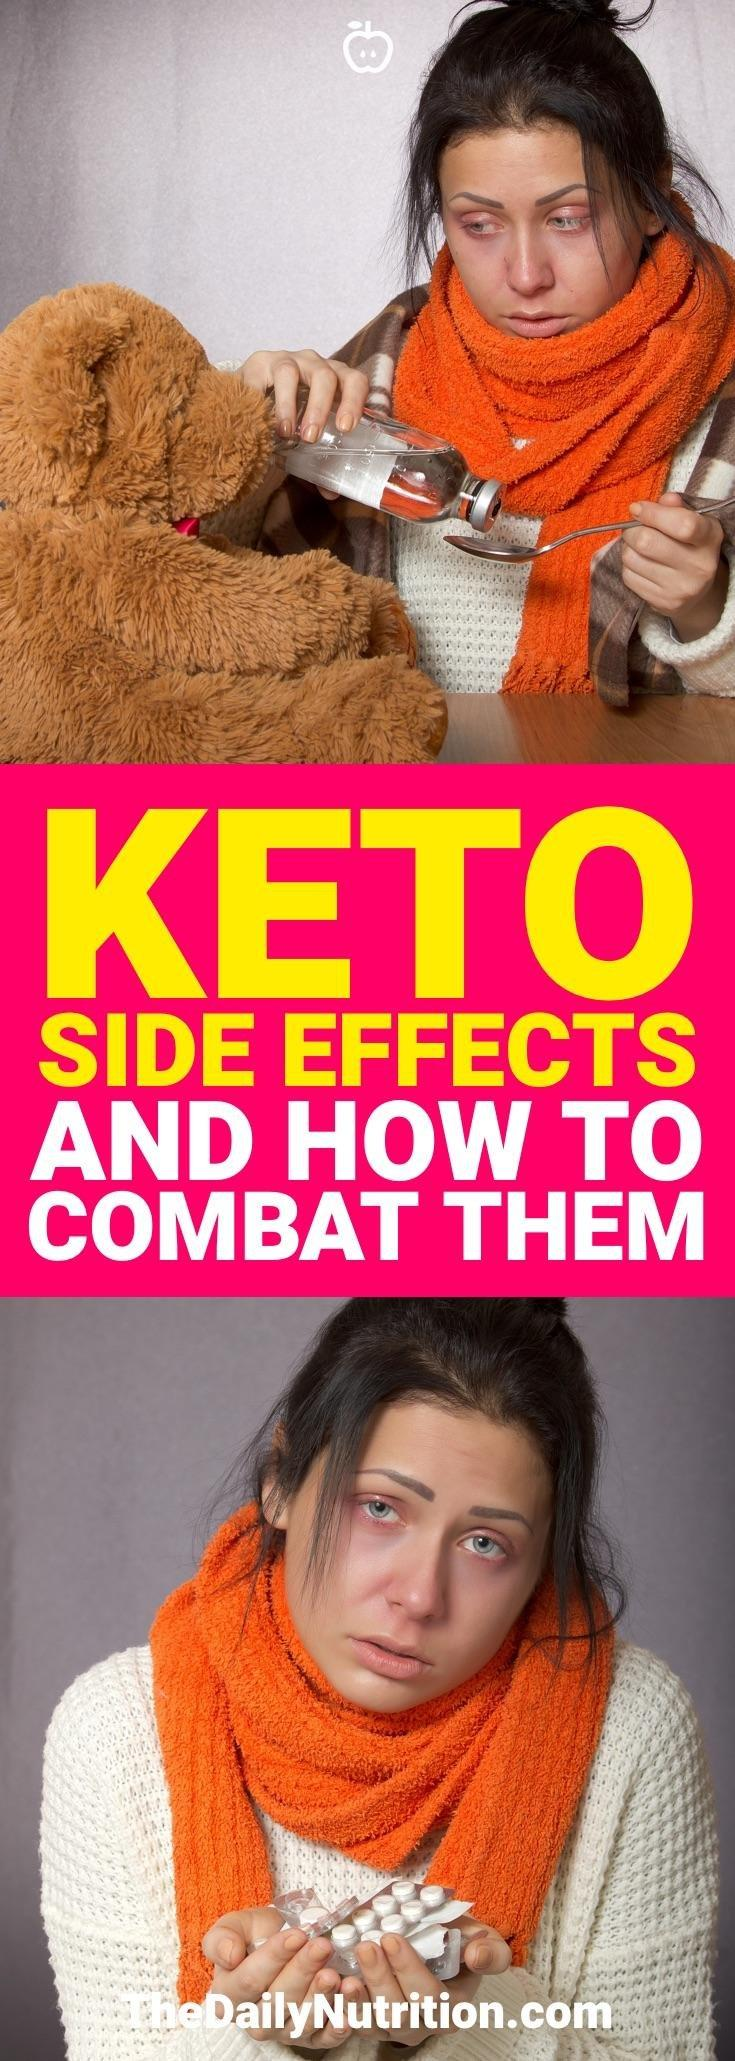 Keto Side Effects And How To Combat Them